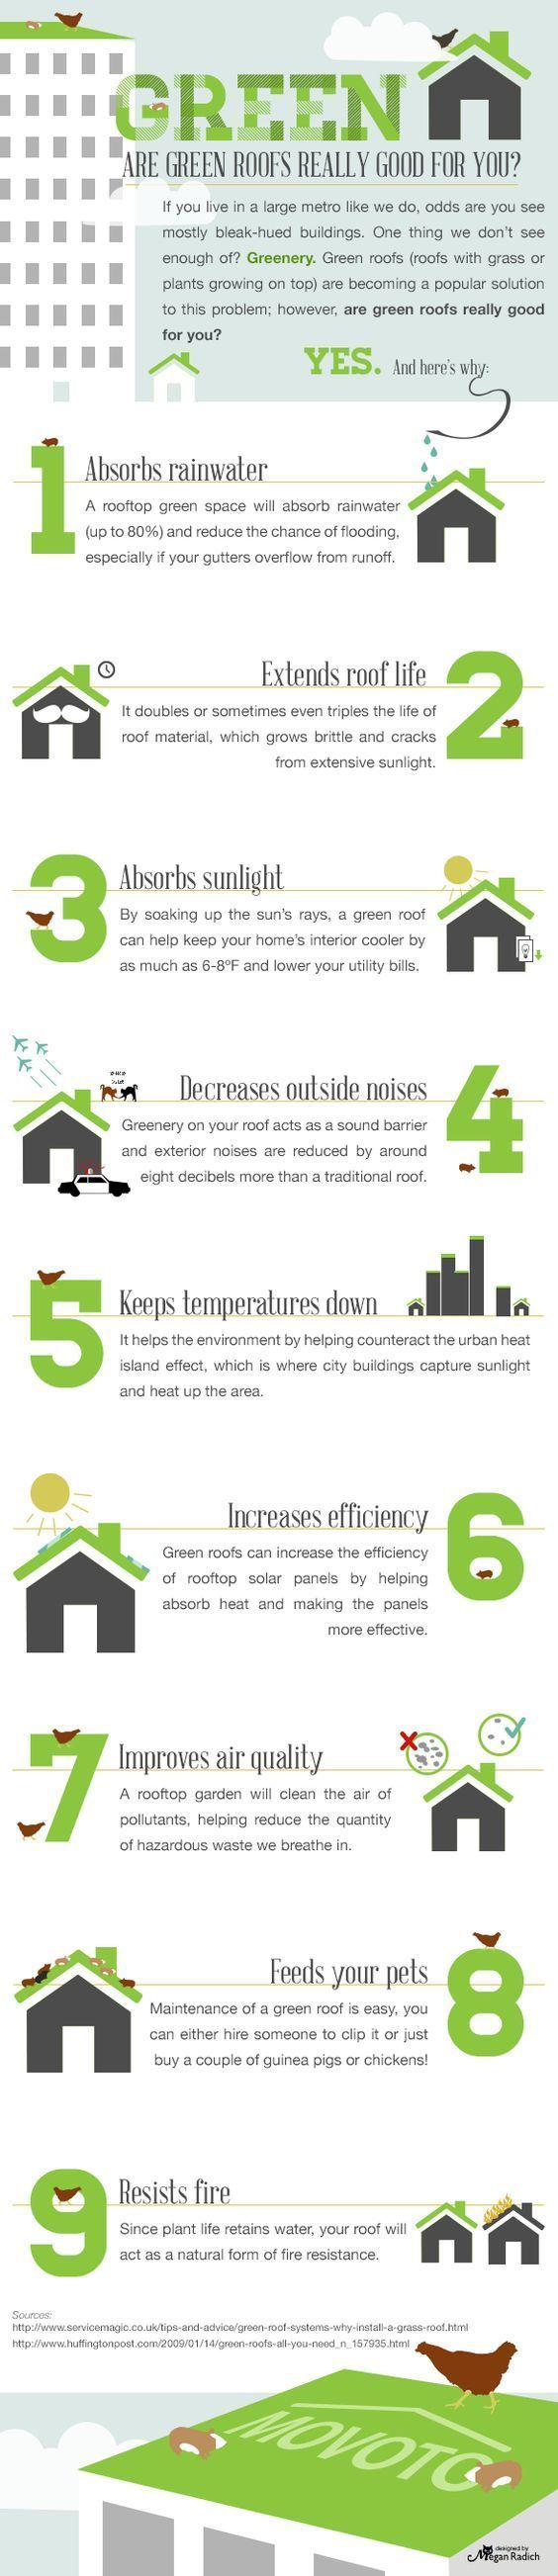 13 TIPS FOR BUILDING AN ENVIRONMENTALLY FRIENDLY HOUSE: The benefits of building green are plentiful, and there's no shortage of information and tips on how to go for a green build or remodel. This infographic by Green Home Gnome gives 13 tips for building a green home, including choosing environmentally-friendly building materials like Structural Insulation Panels (SIPs) and natural finishes, introducing solar power, and going for green HVAC technology.